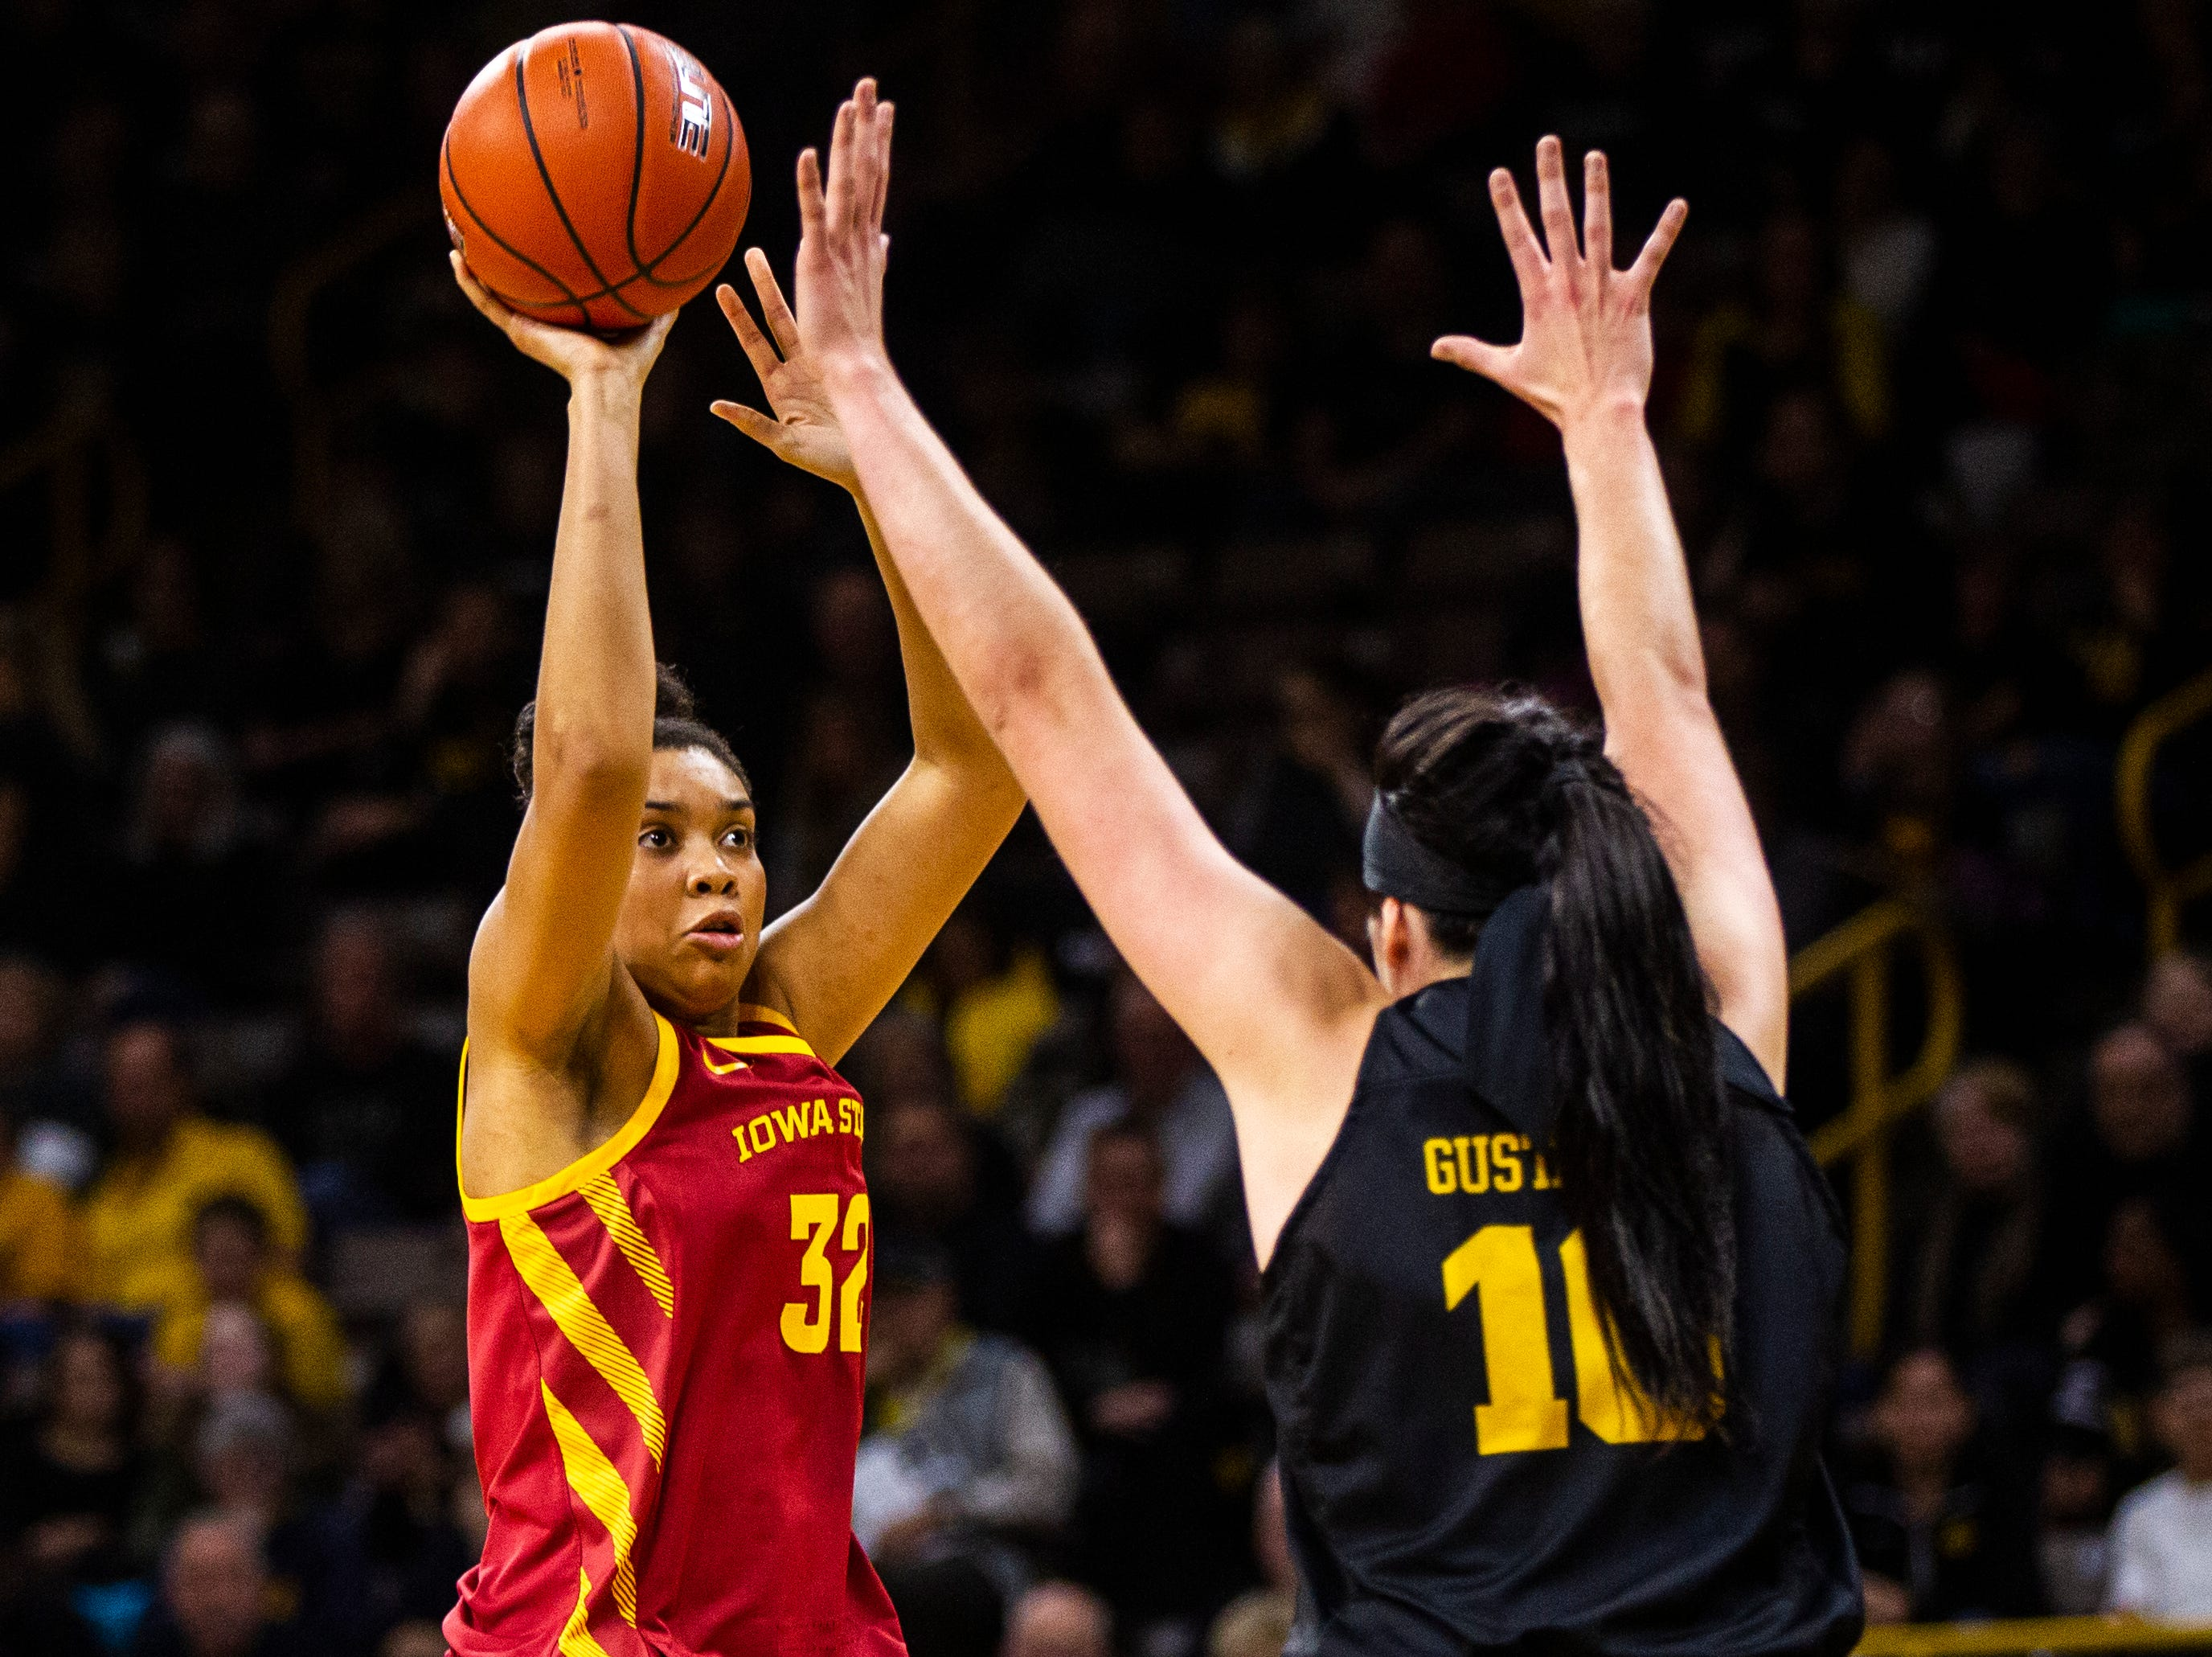 Iowa State forward Meredith Burkhall (32) shoots a 3-point basket past Iowa forward Megan Gustafson (10) during a Cy-Hawk series NCAA women's basketball game on Wednesday, Dec. 5, 2018, at Carver-Hawkeye Arena in Iowa City.